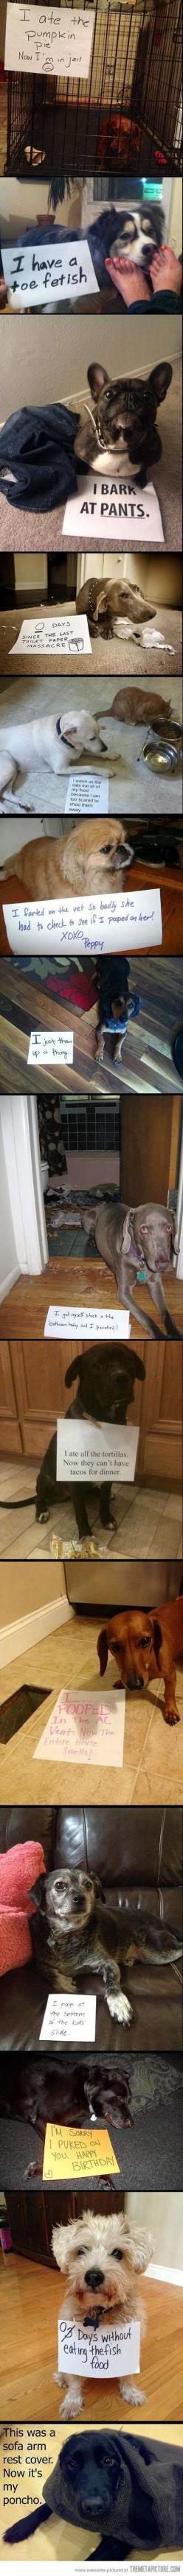 dog shaming at its finest - the last one is my favorite :) I dare you not to laugh!: Giggle, Dog Shame, Dog Shaming, Pet, Puppy, So Funny, Animal